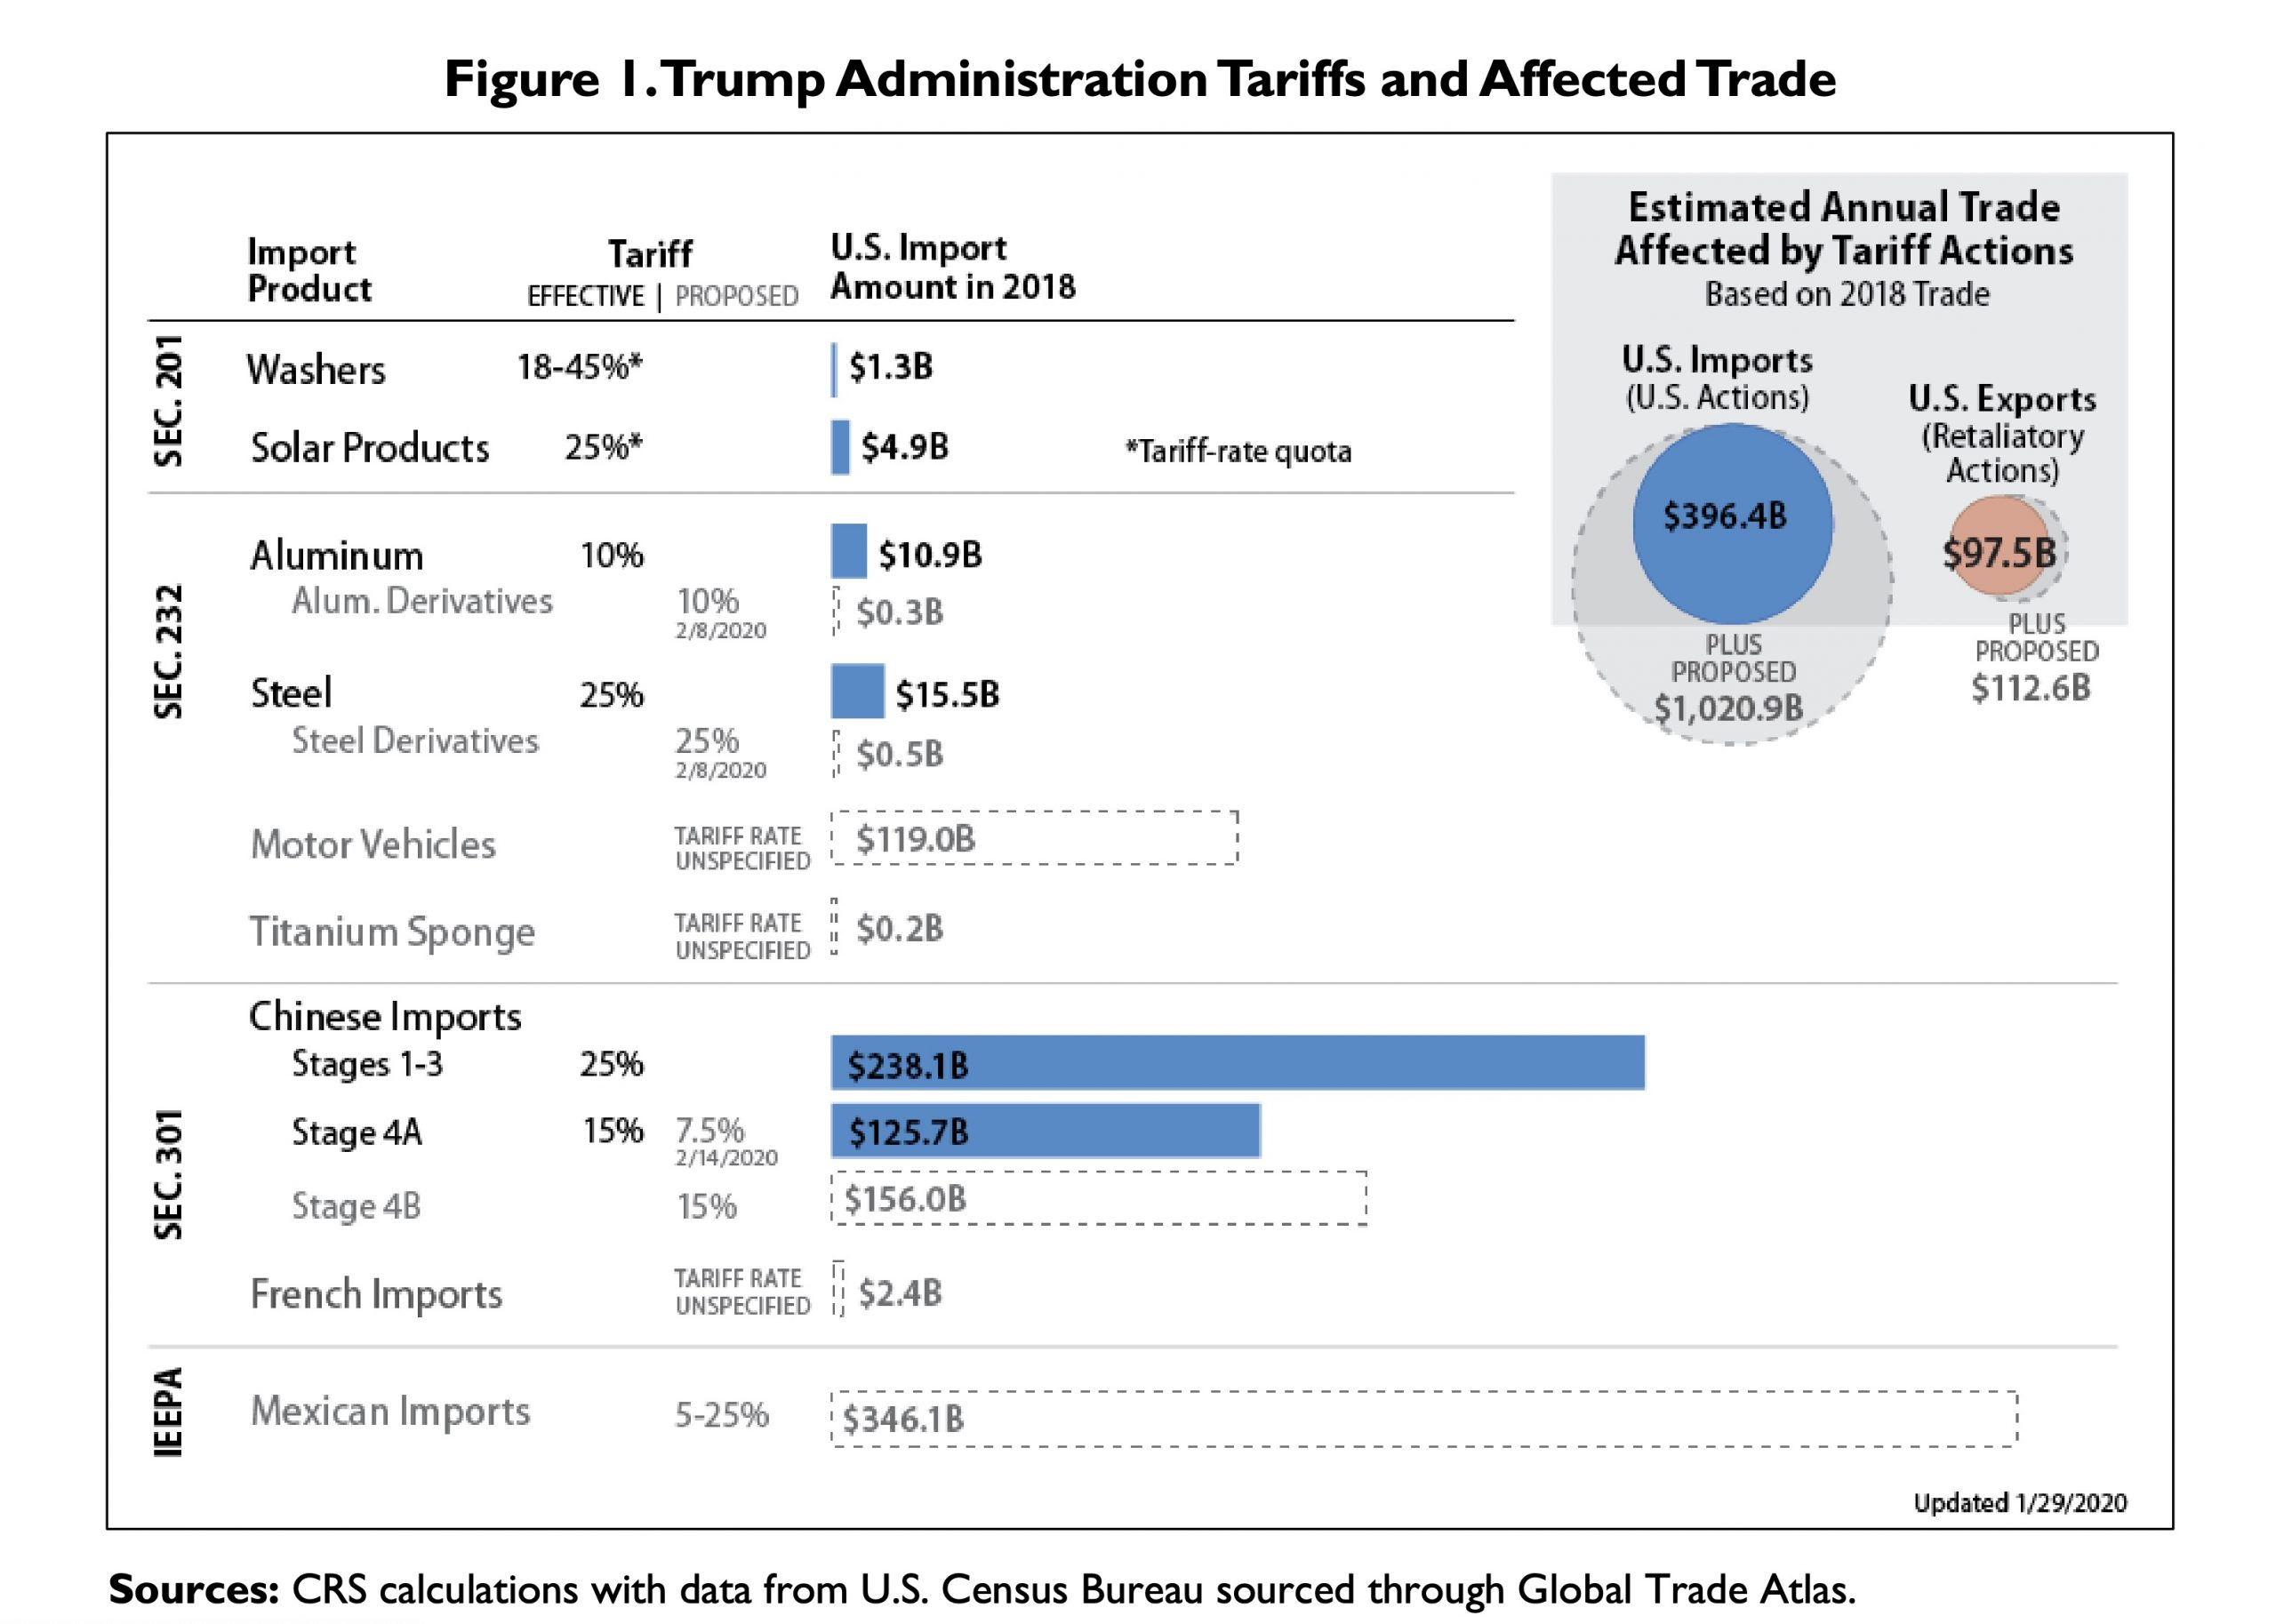 Escalating U.S. Tariffs: Affected Trade